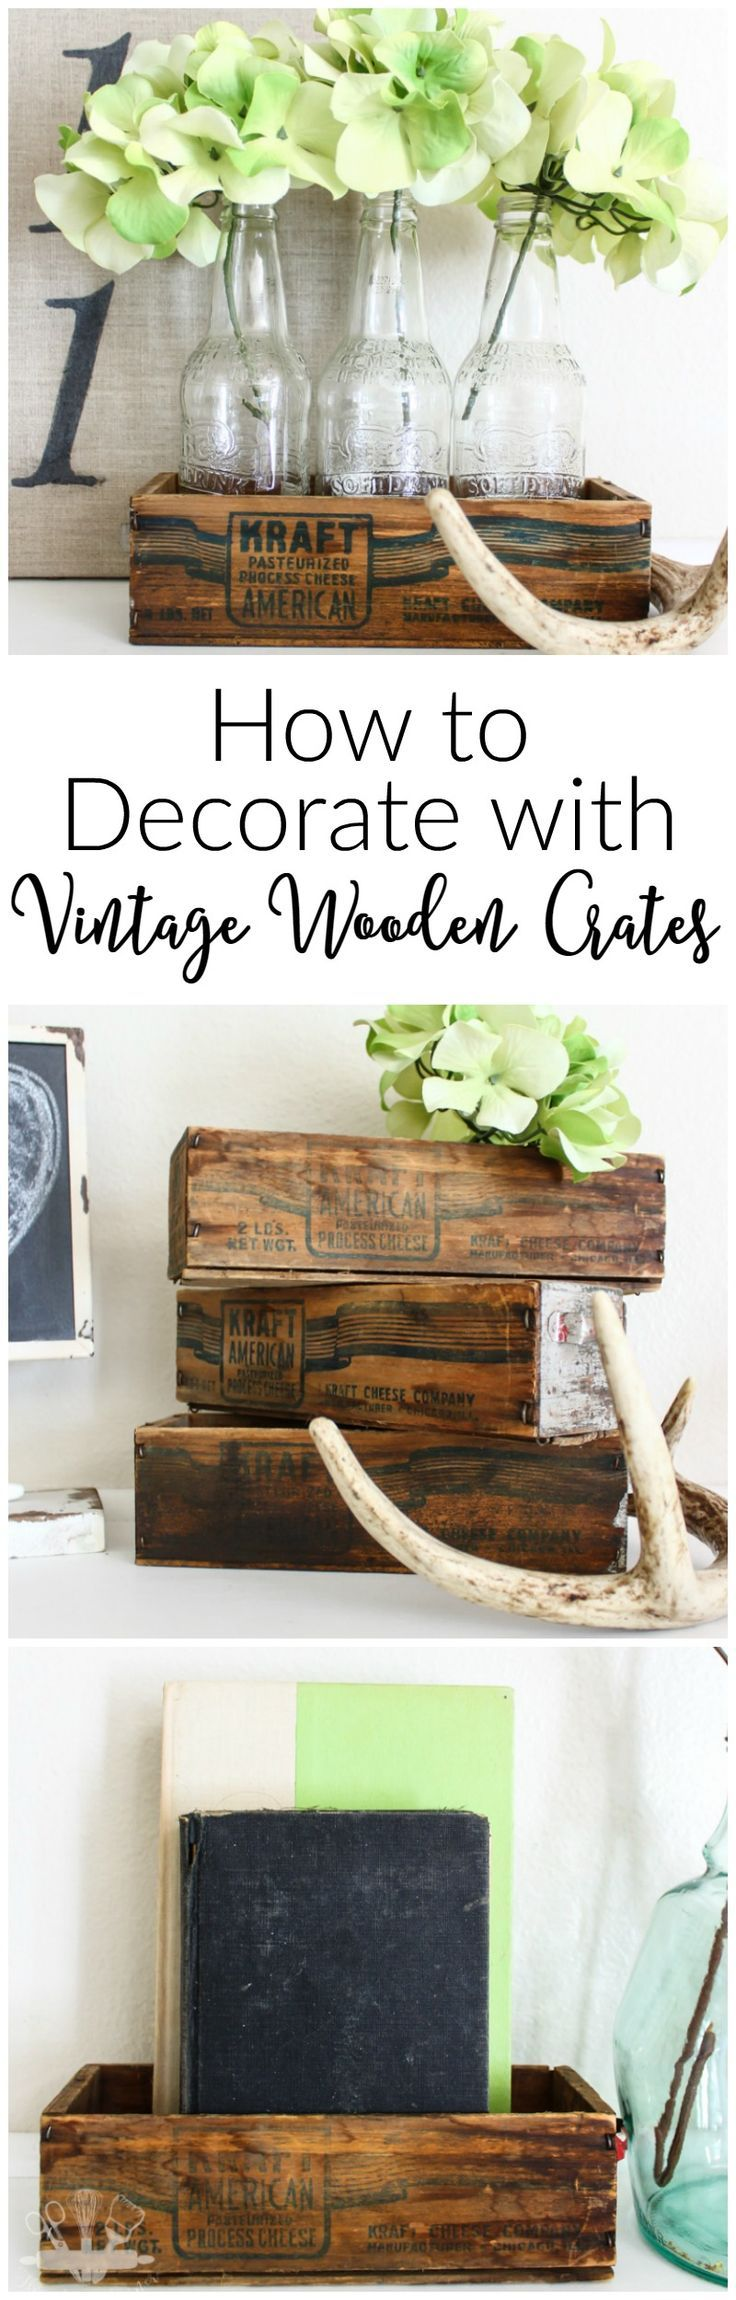 How to Decorate with Vintage Wooden Crates